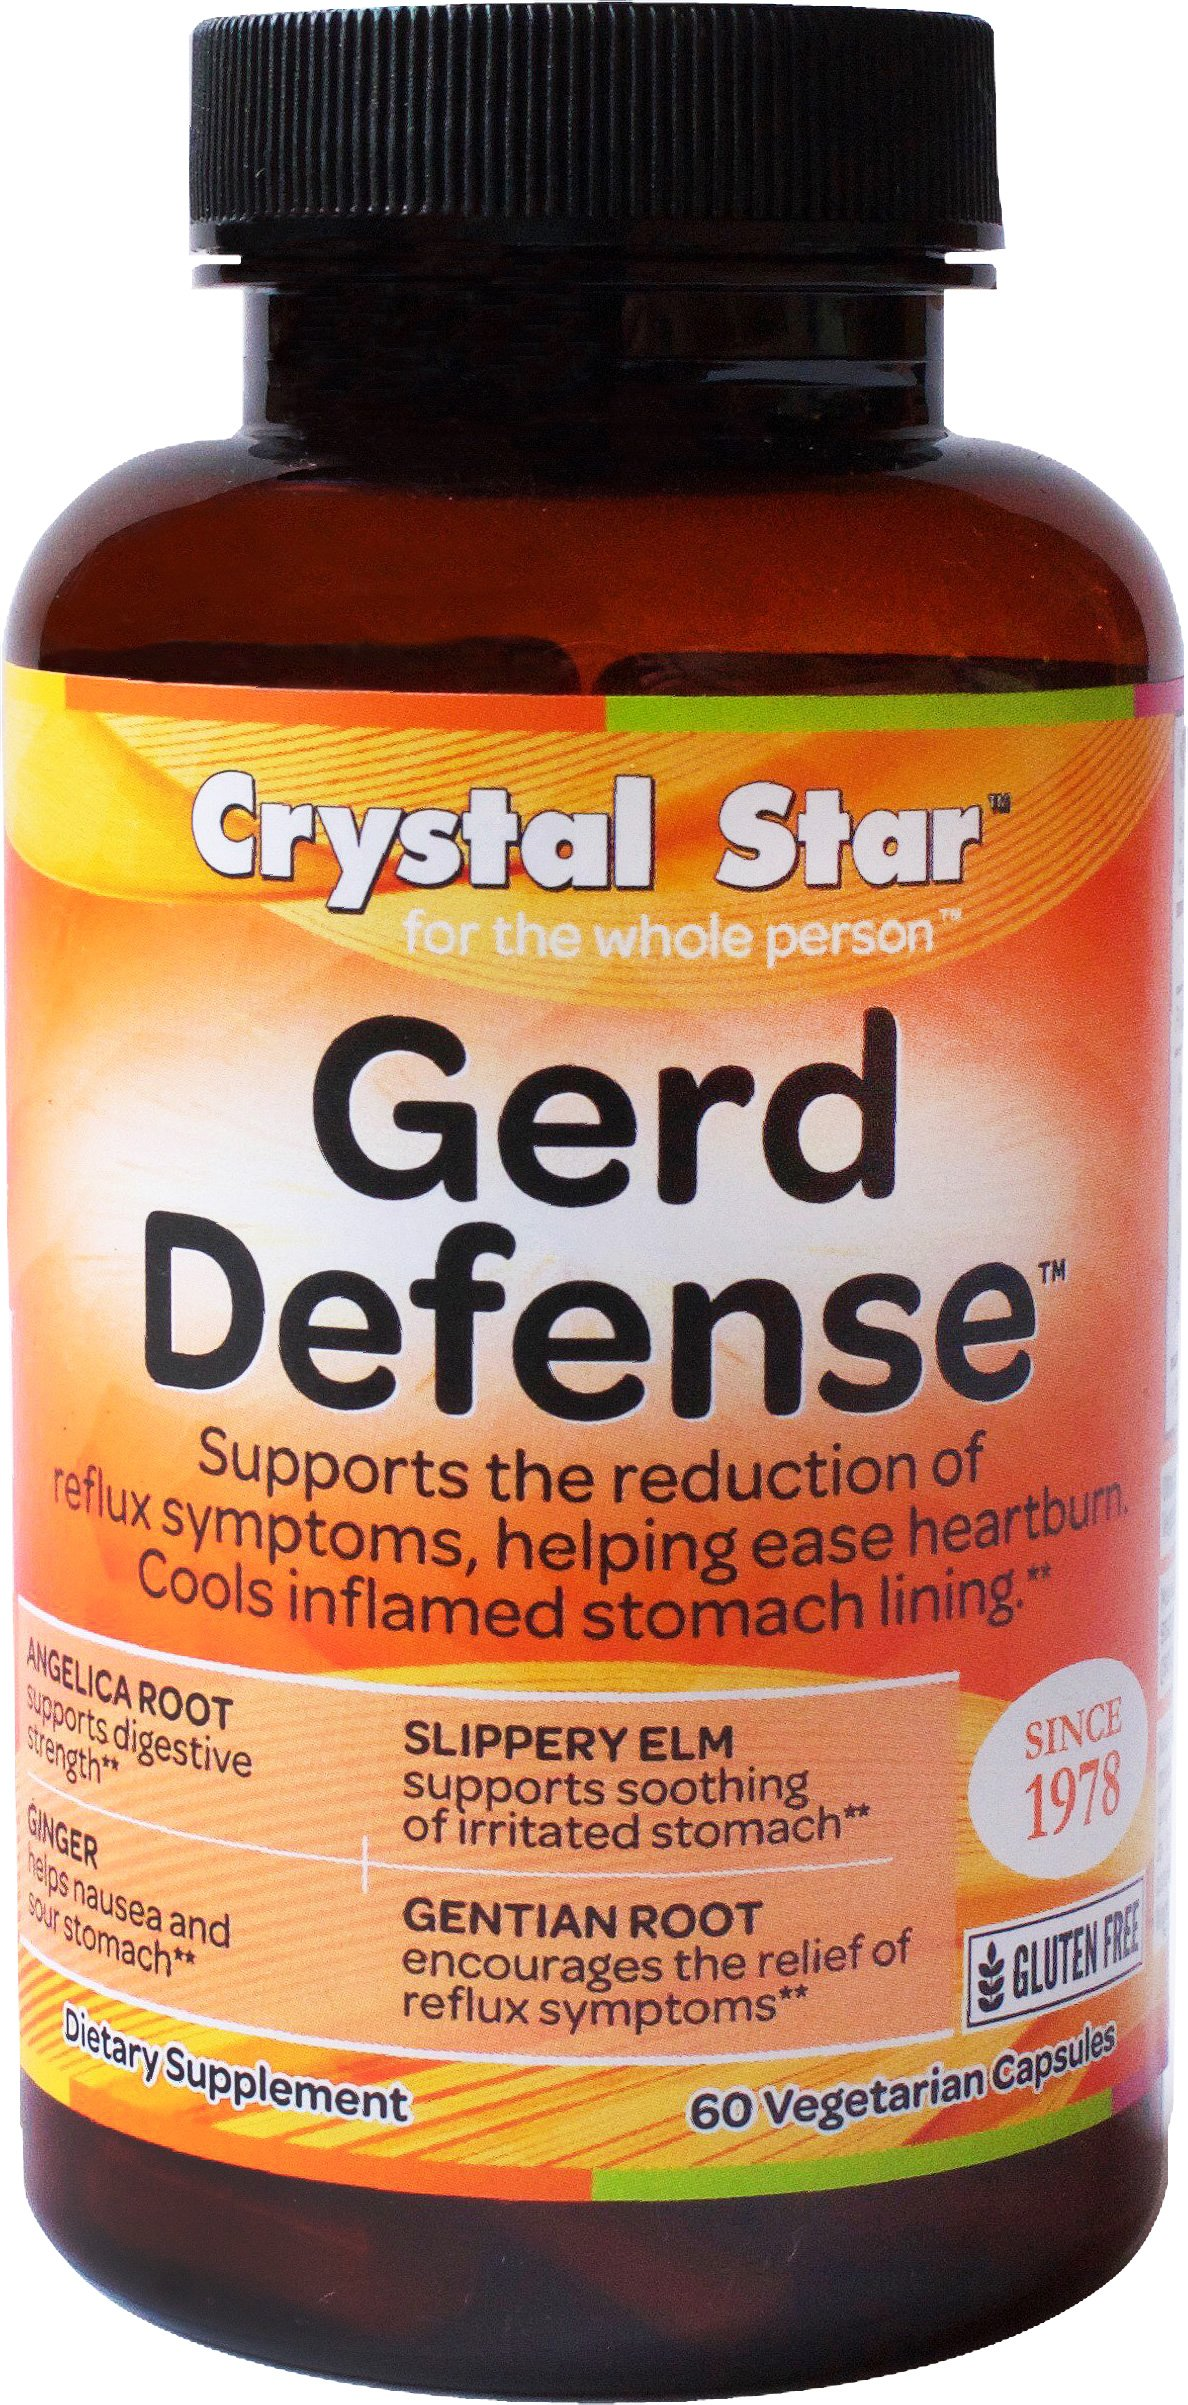 Crystal Star Gerd Defense Herbal Supplements, 60 Count